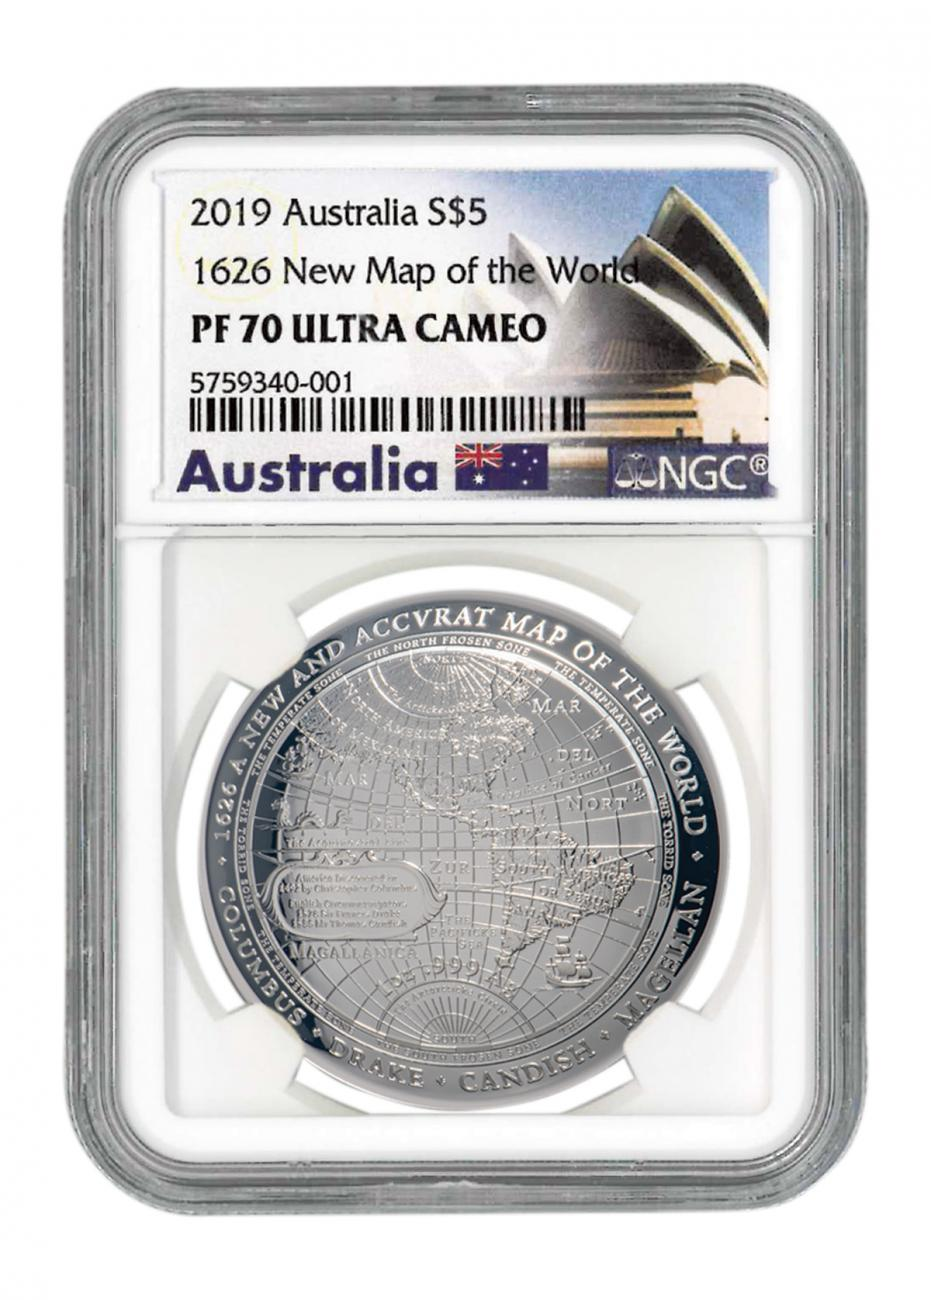 2019 Australia 1626 New Map of the World Domed 1 oz Silver Proof $5 Coin NGC PF70 UC